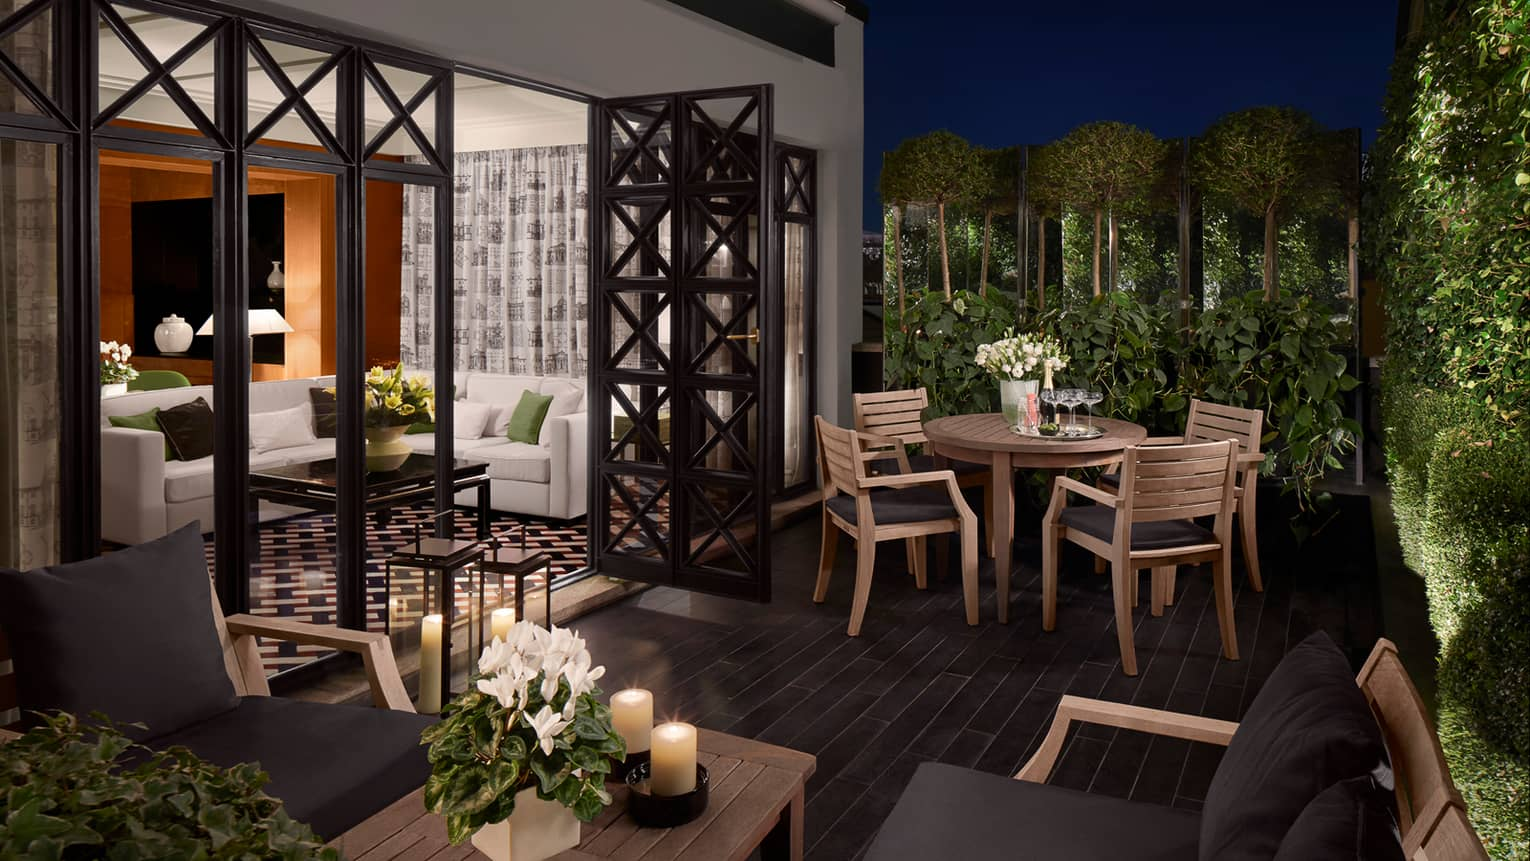 Balcony with wood tables and candles, chairs with black cushions, open doors to suite, white sofa